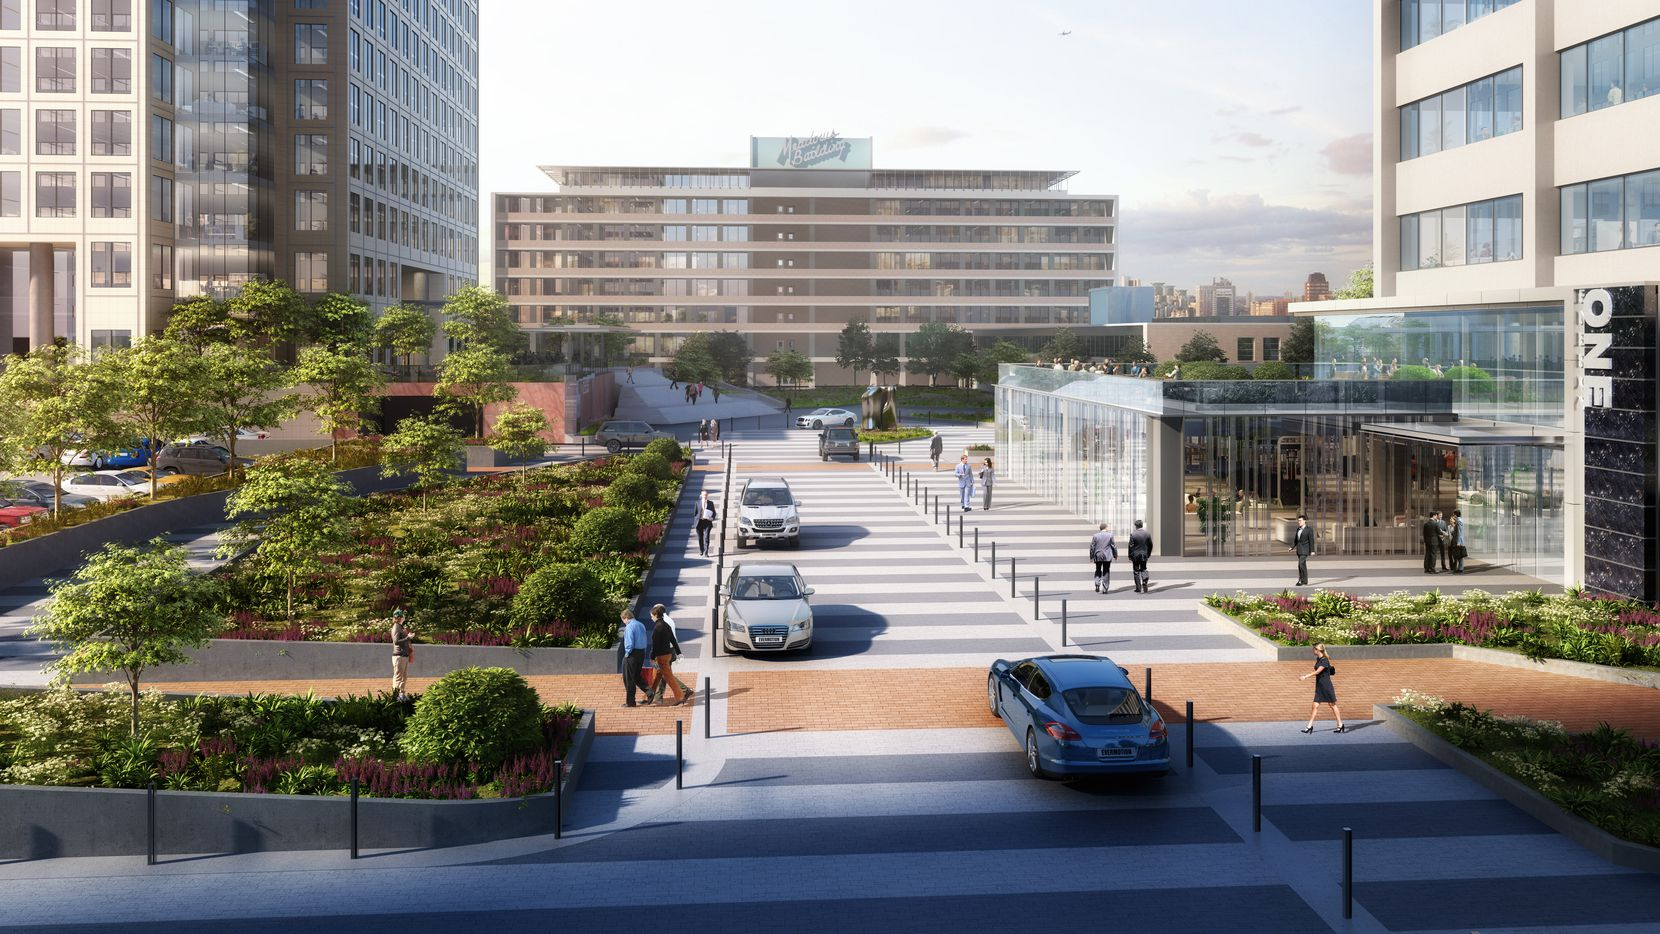 Take a look at architect Gensler's new office in Dallas